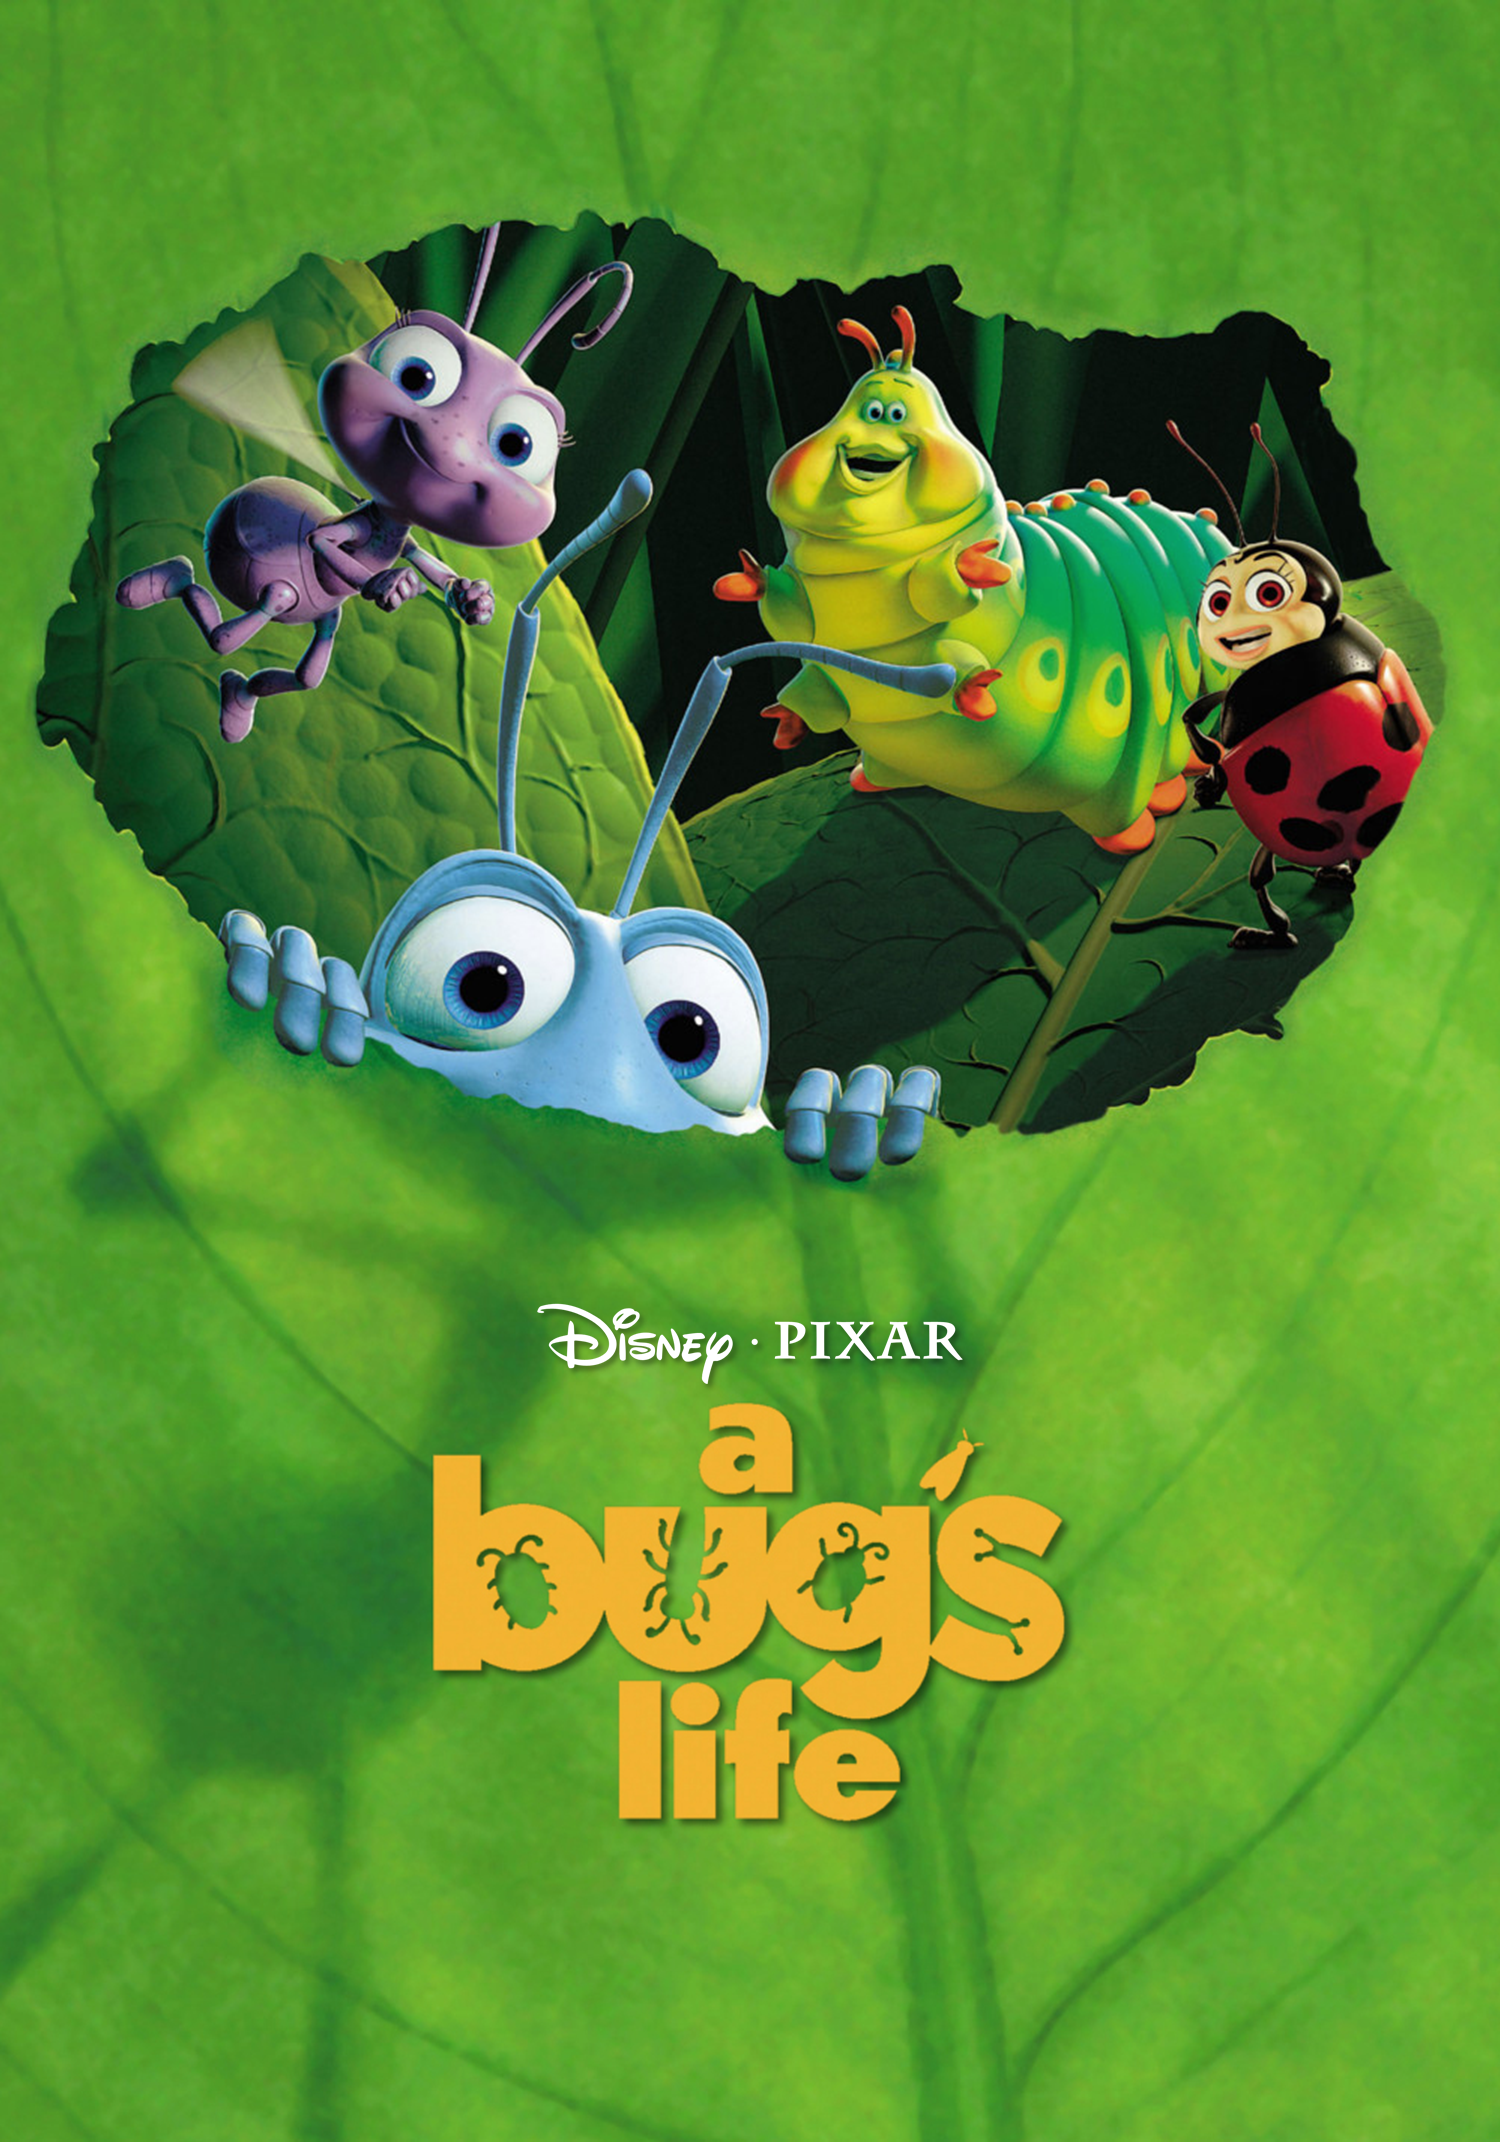 It's just a picture of Canny Characters in a Bug's Life